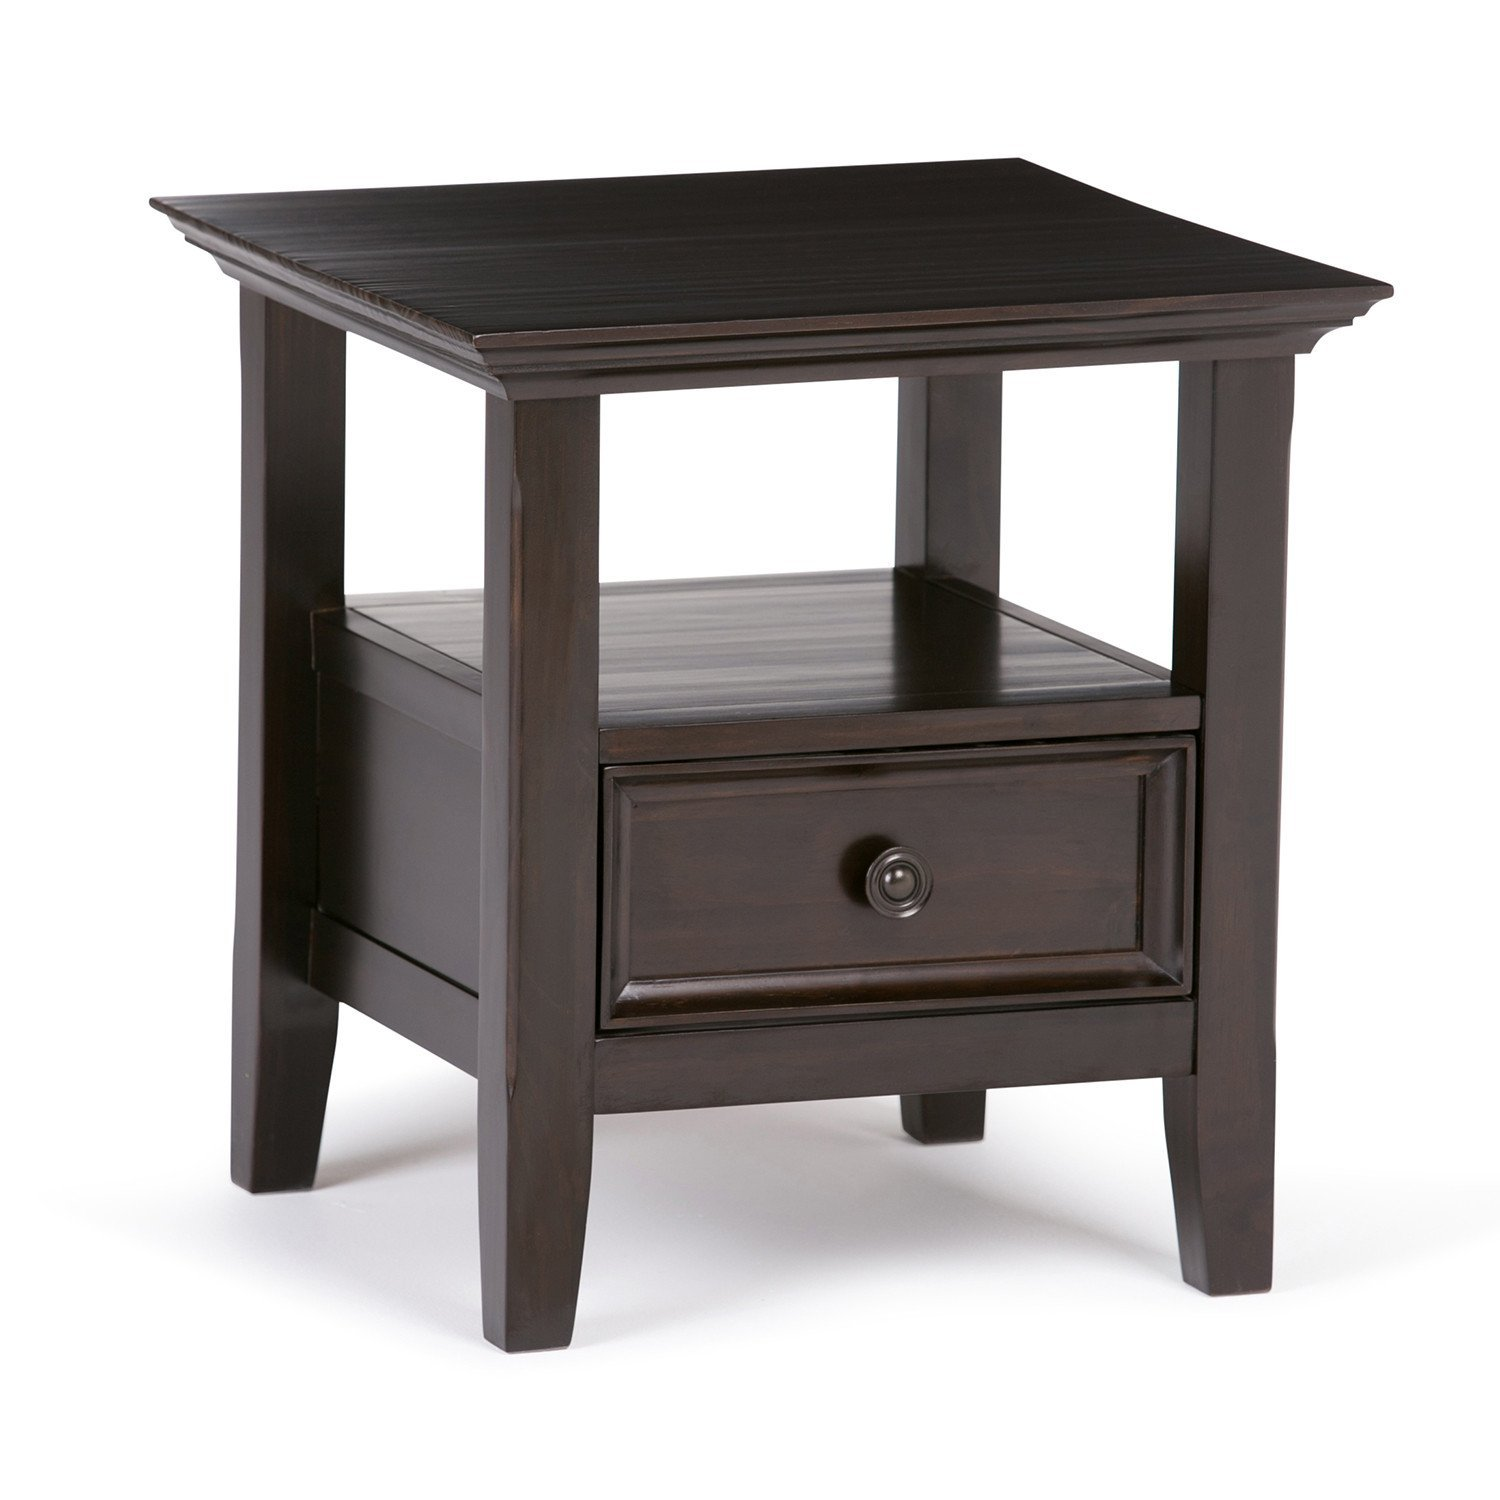 Amherst End Table End Tables Wood End Tables End Tables With Storage